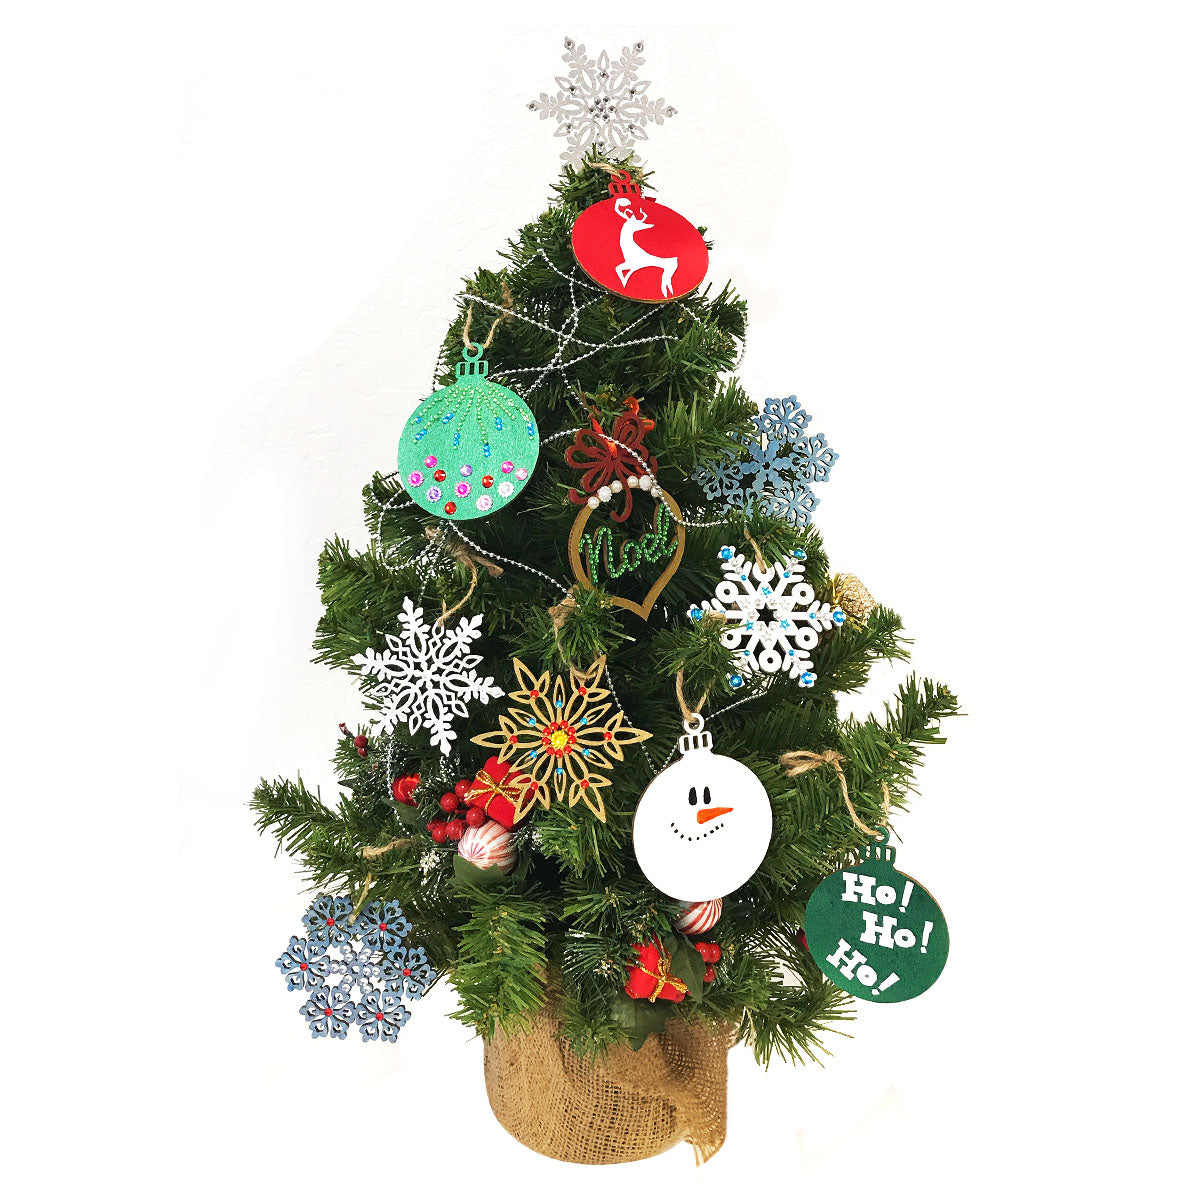 Wrapables Christmas Inspiration Wooden Ornament Hanging Tags (Set of 16)